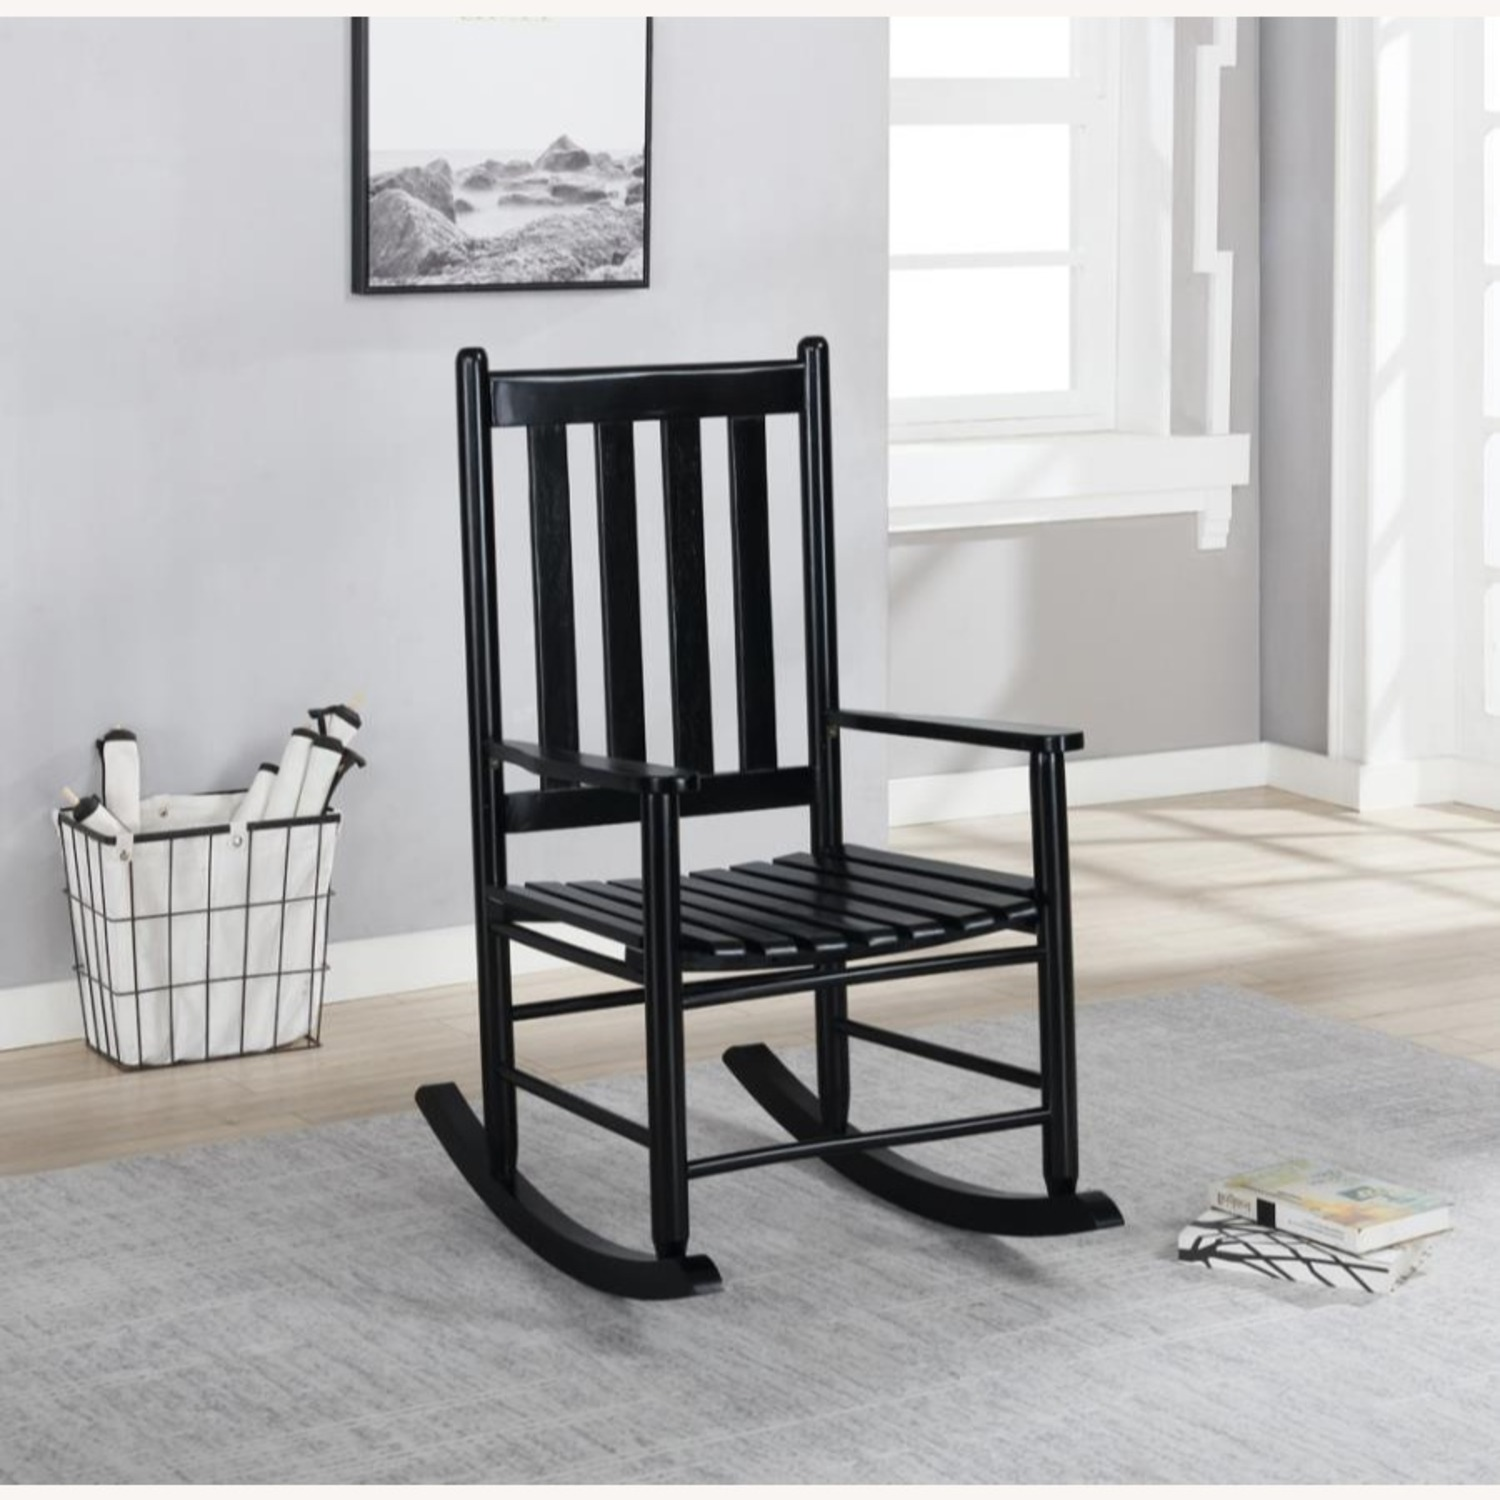 Rocking Chair In Black Solid Acacia Wood Finish - image-2